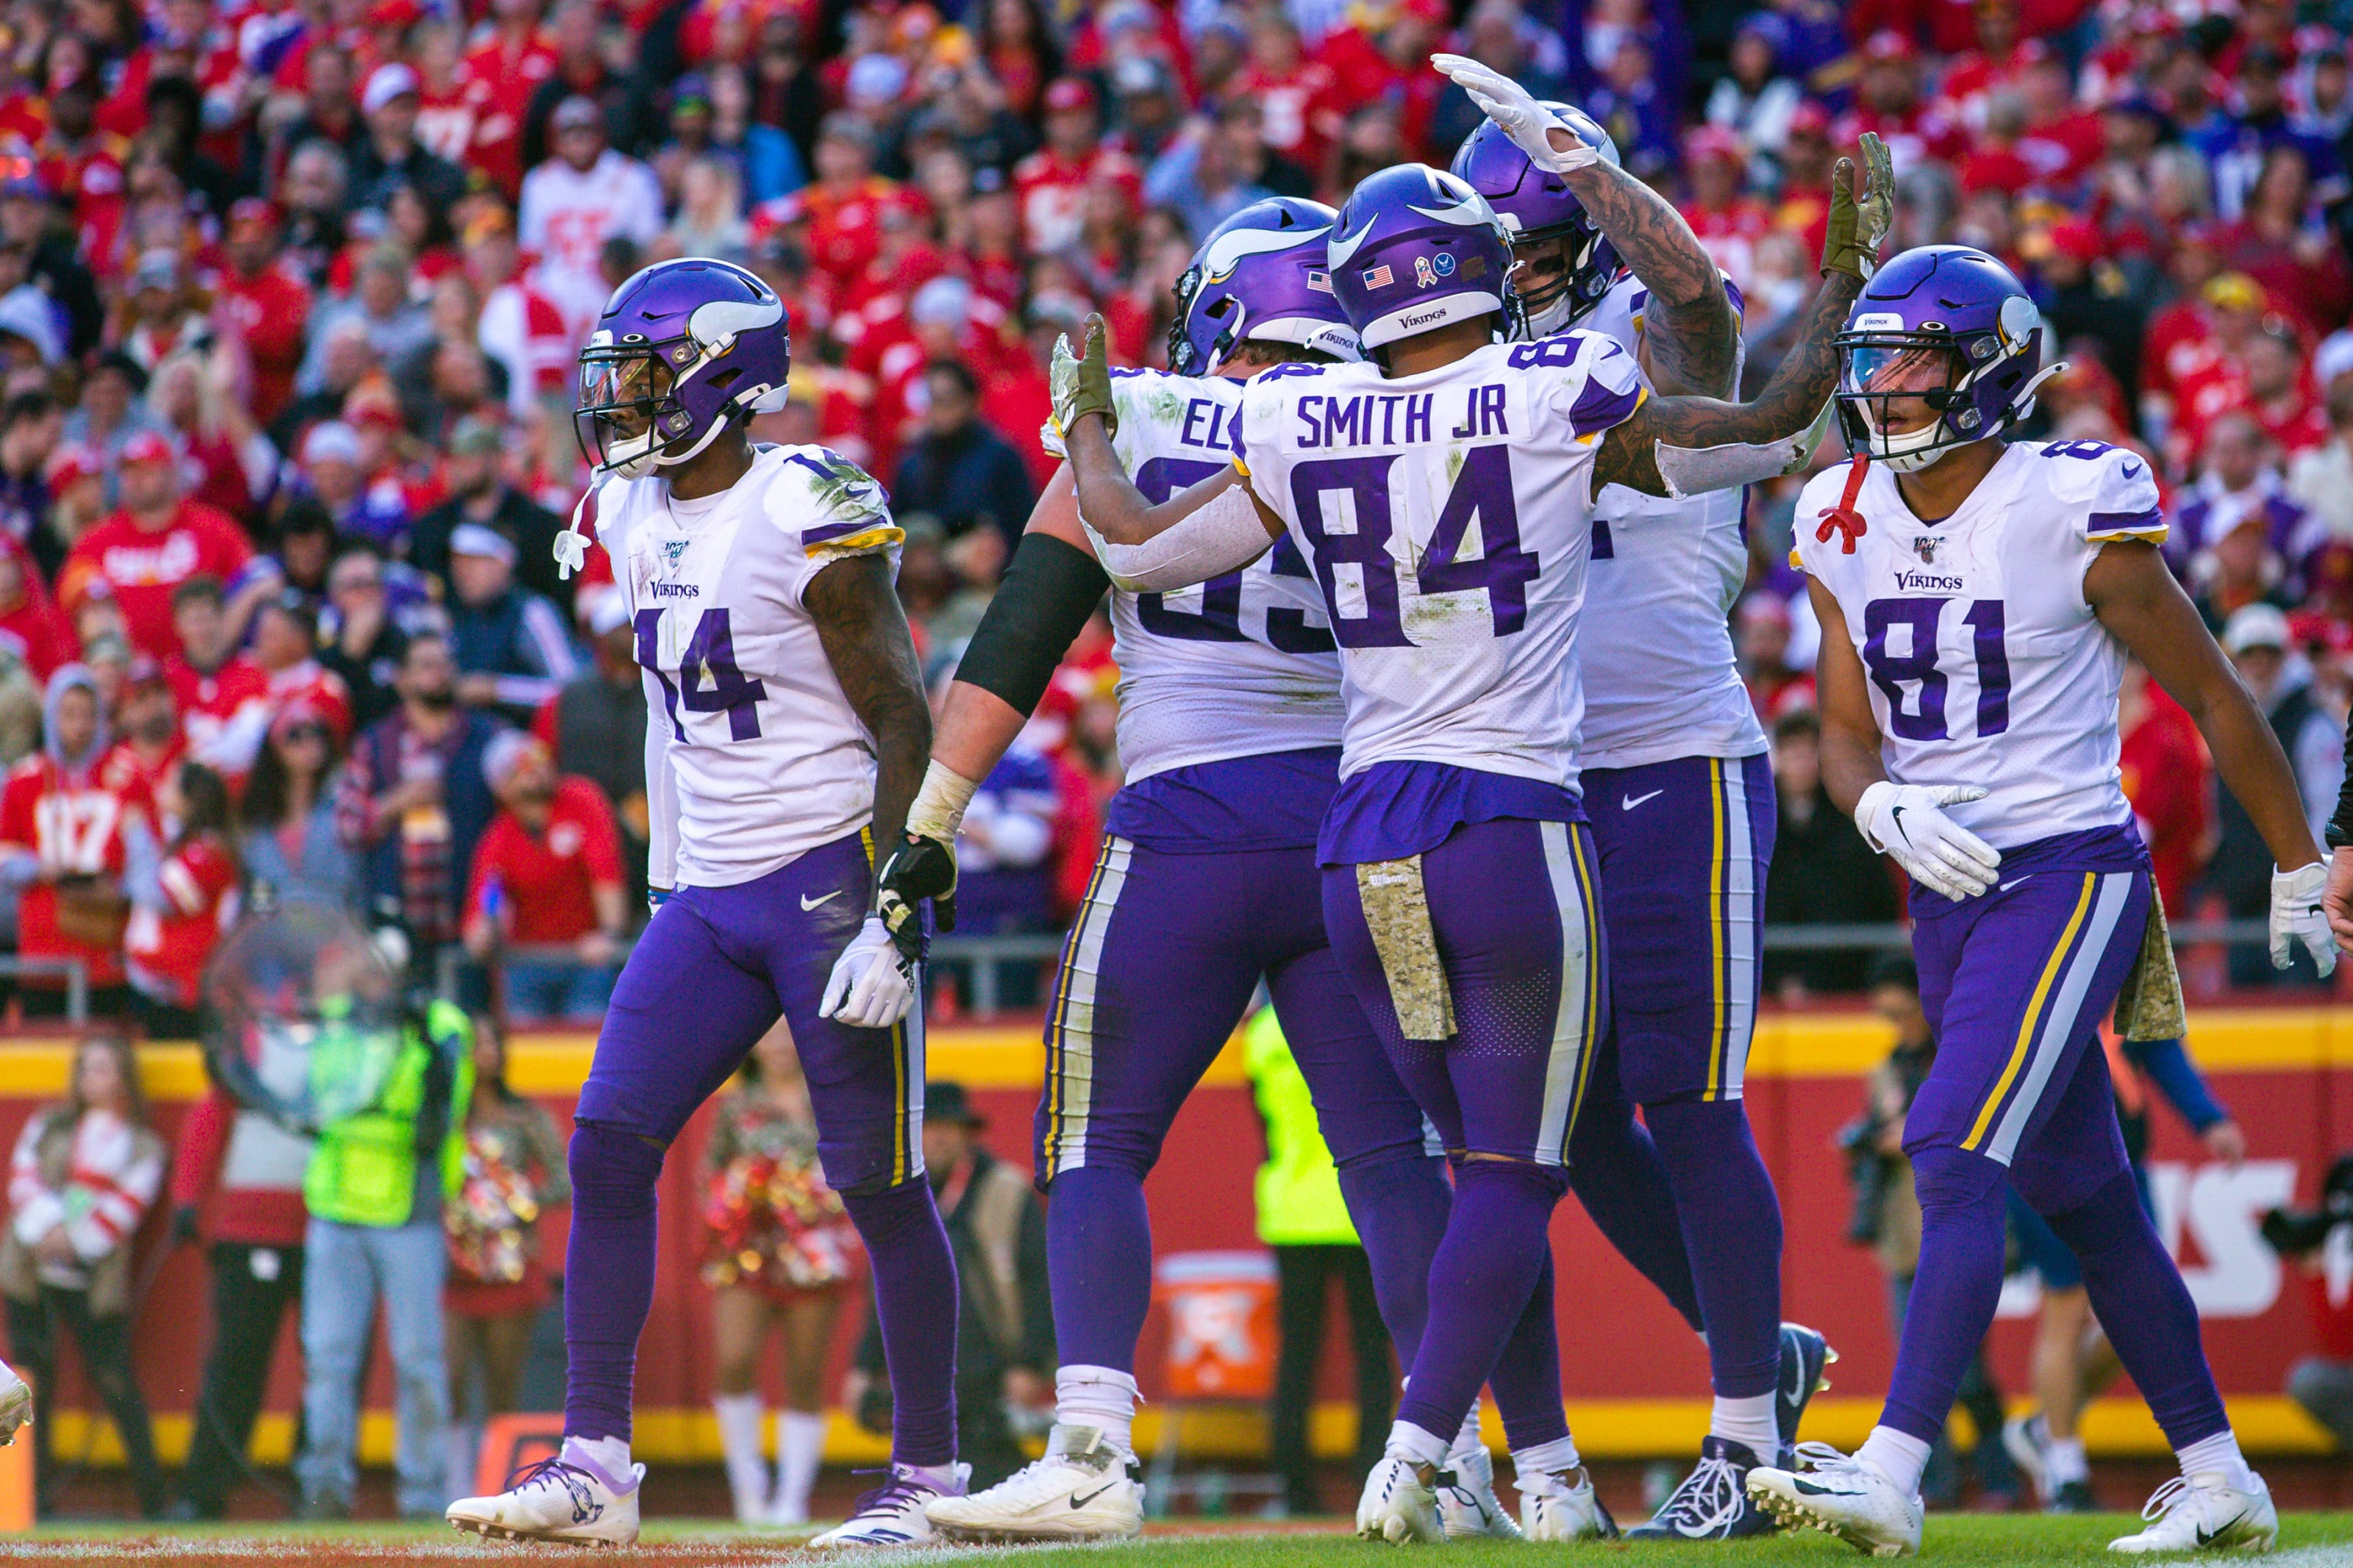 KANSAS CITY, MO - NOVEMBER 03: Minnesota Vikings celebrate in the end zone after a touchdown during the game against the Kansas City Chiefs on November 3, 2019 at Arrowhead Stadium in Kansas City, Missouri. (Photo by William Purnell/Icon Sportswire via Getty Images)